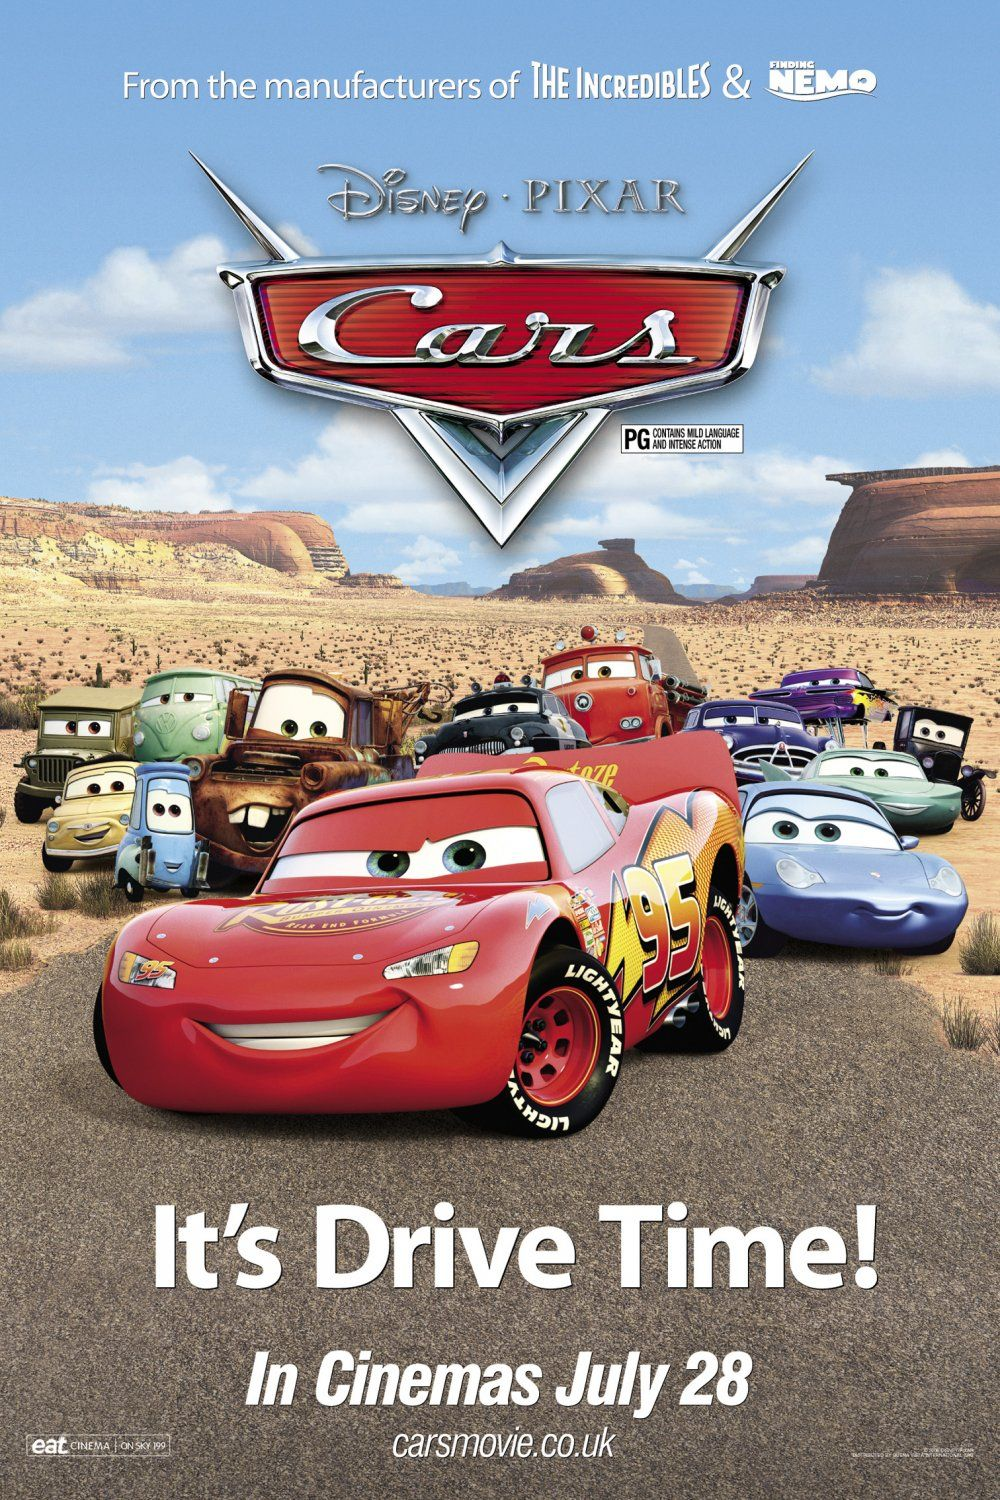 Return to the main poster page for Cars (12 of 13